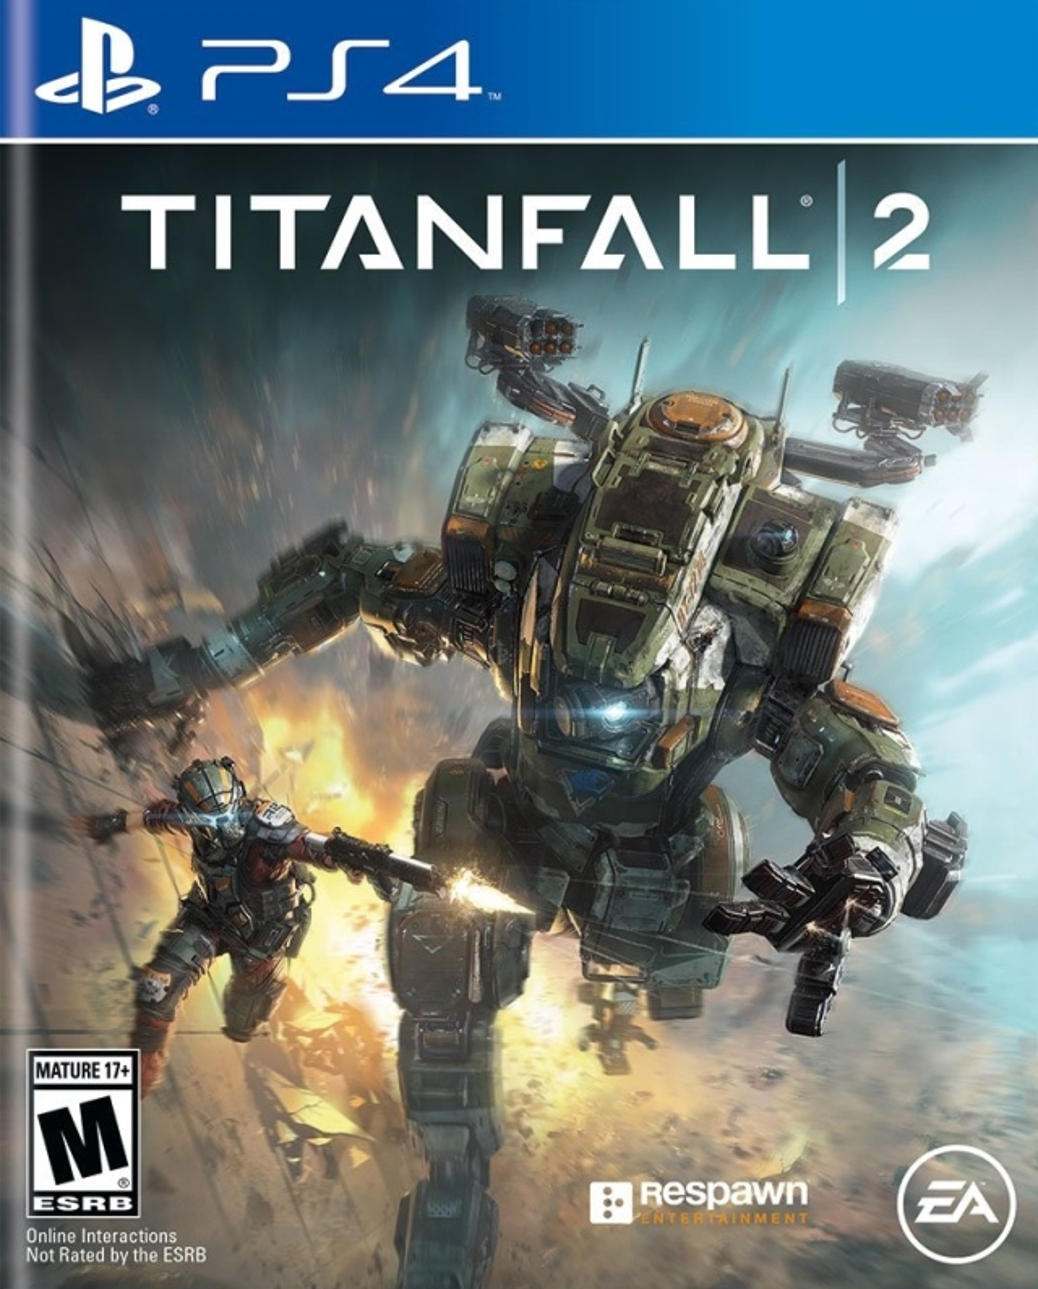 Titanfall 2 - PlayStation 4 - North American Box Art